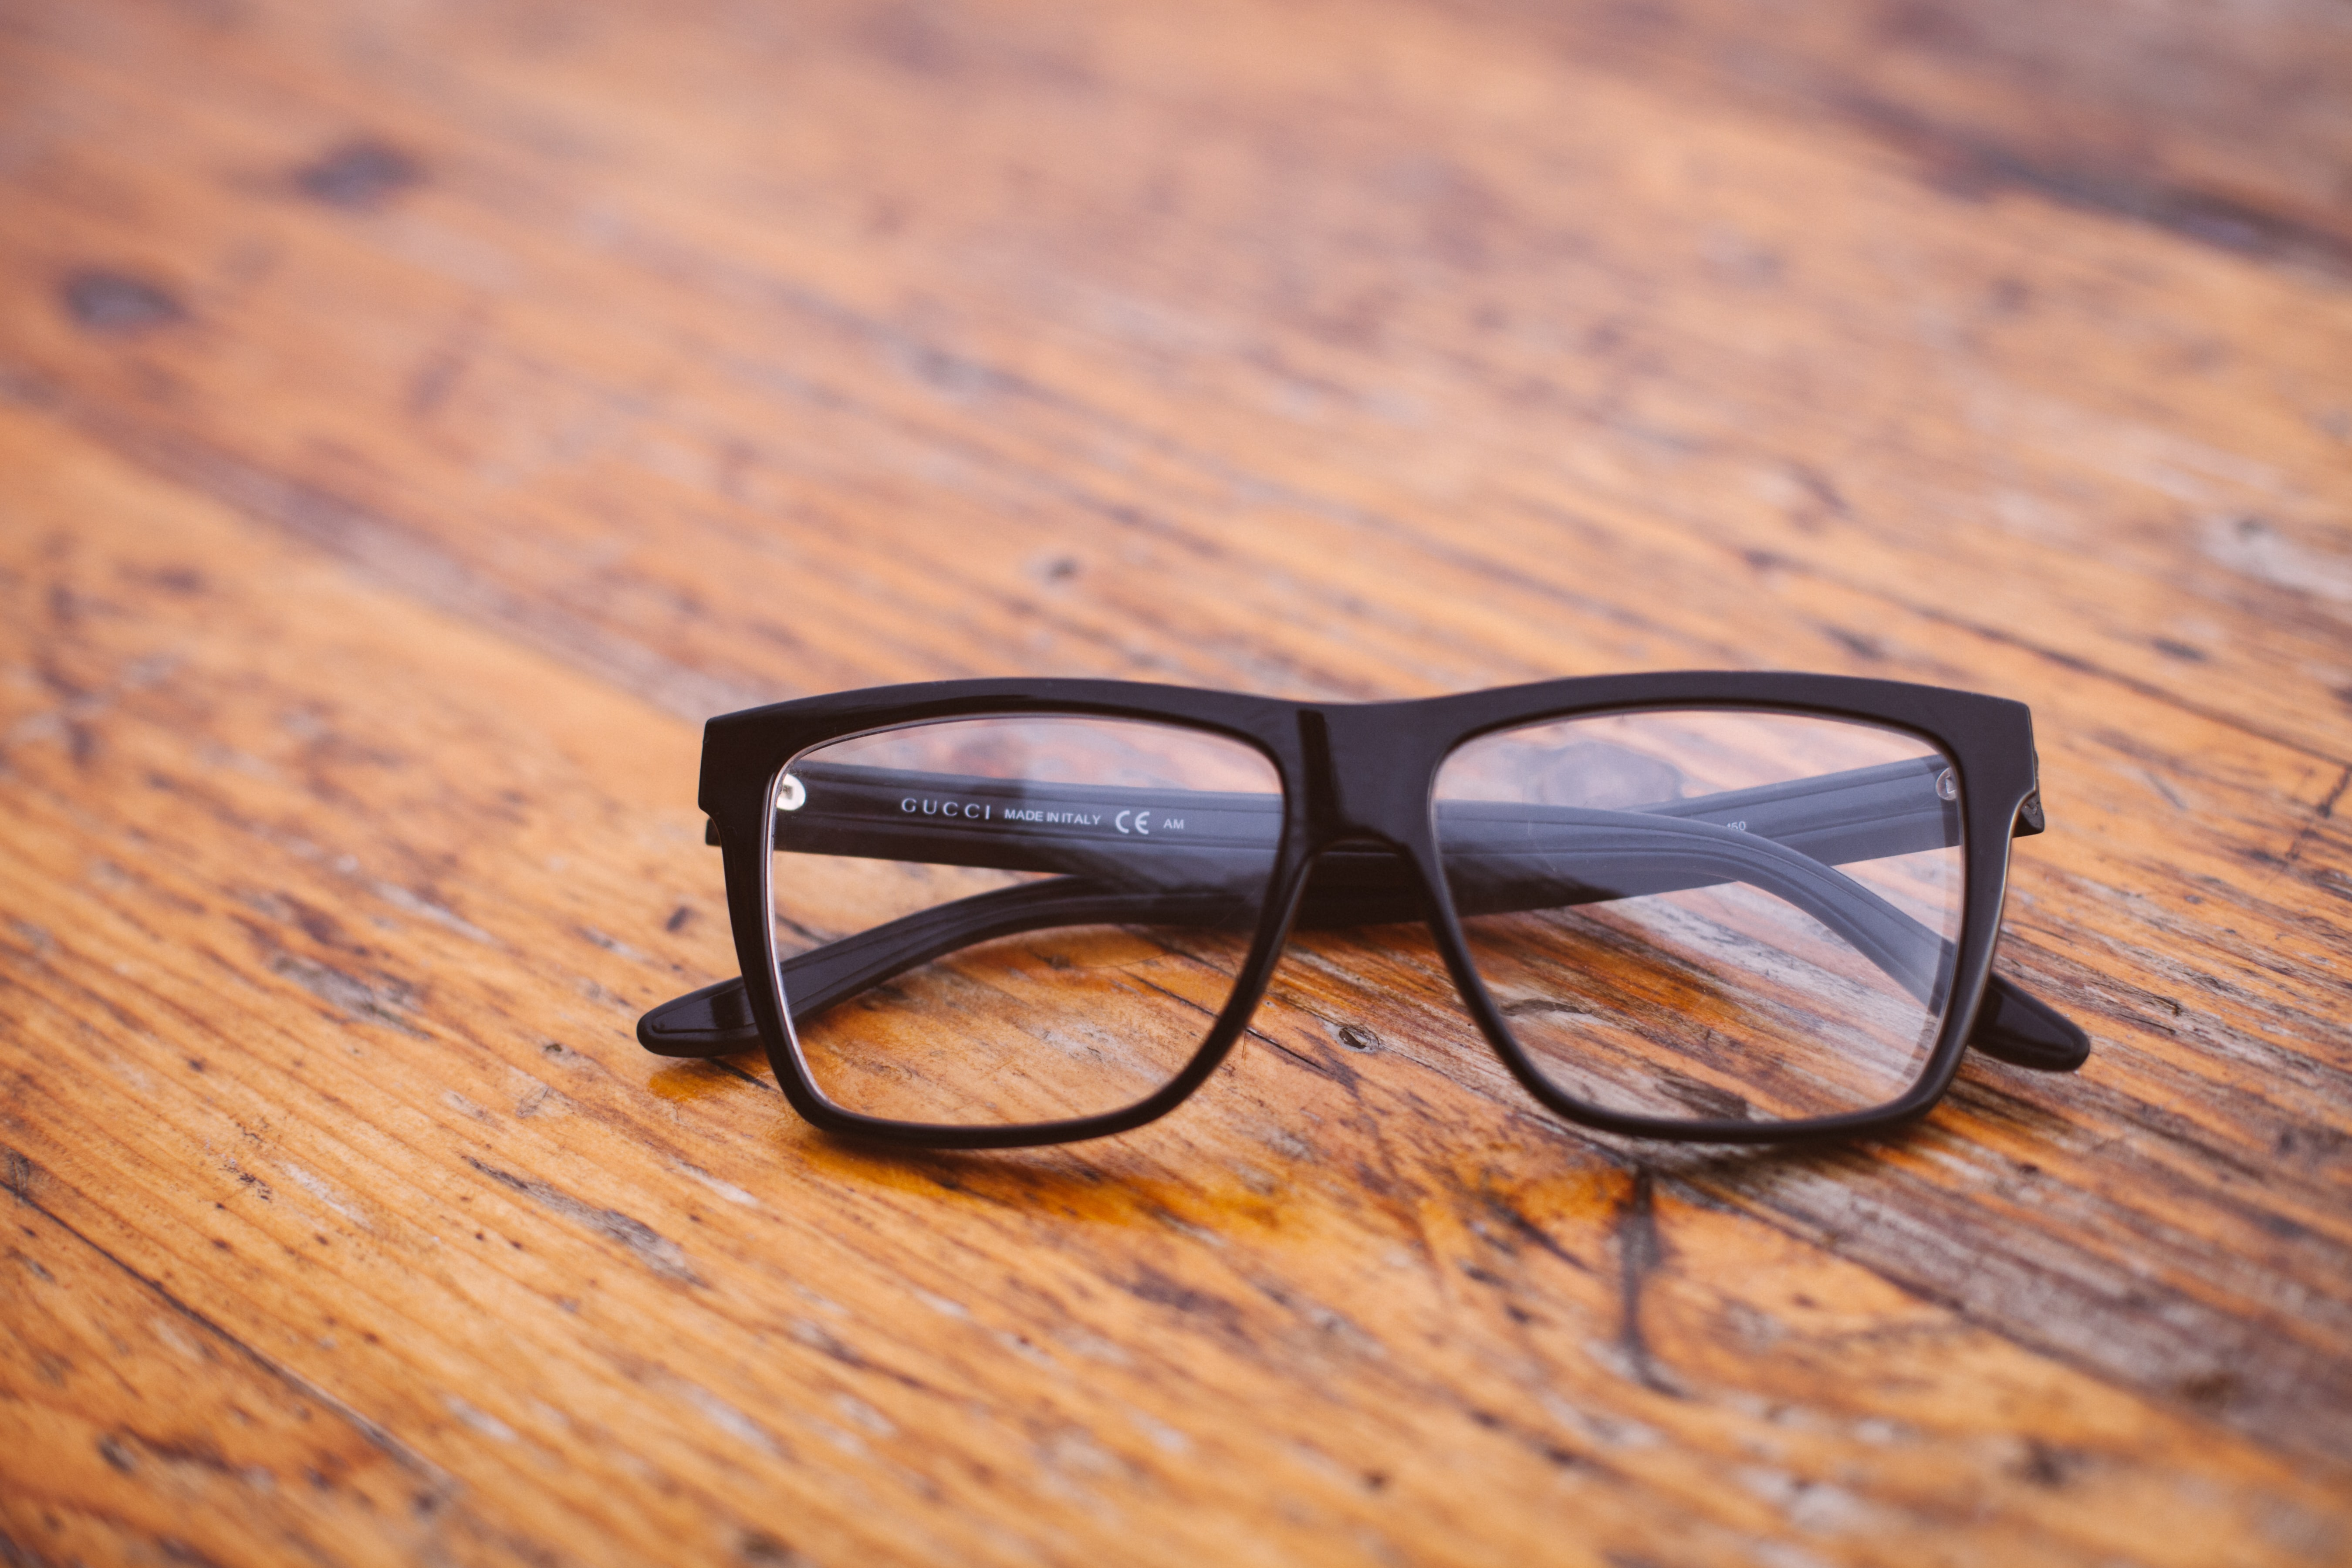 A pair of Gucci glasses on a wooden surface